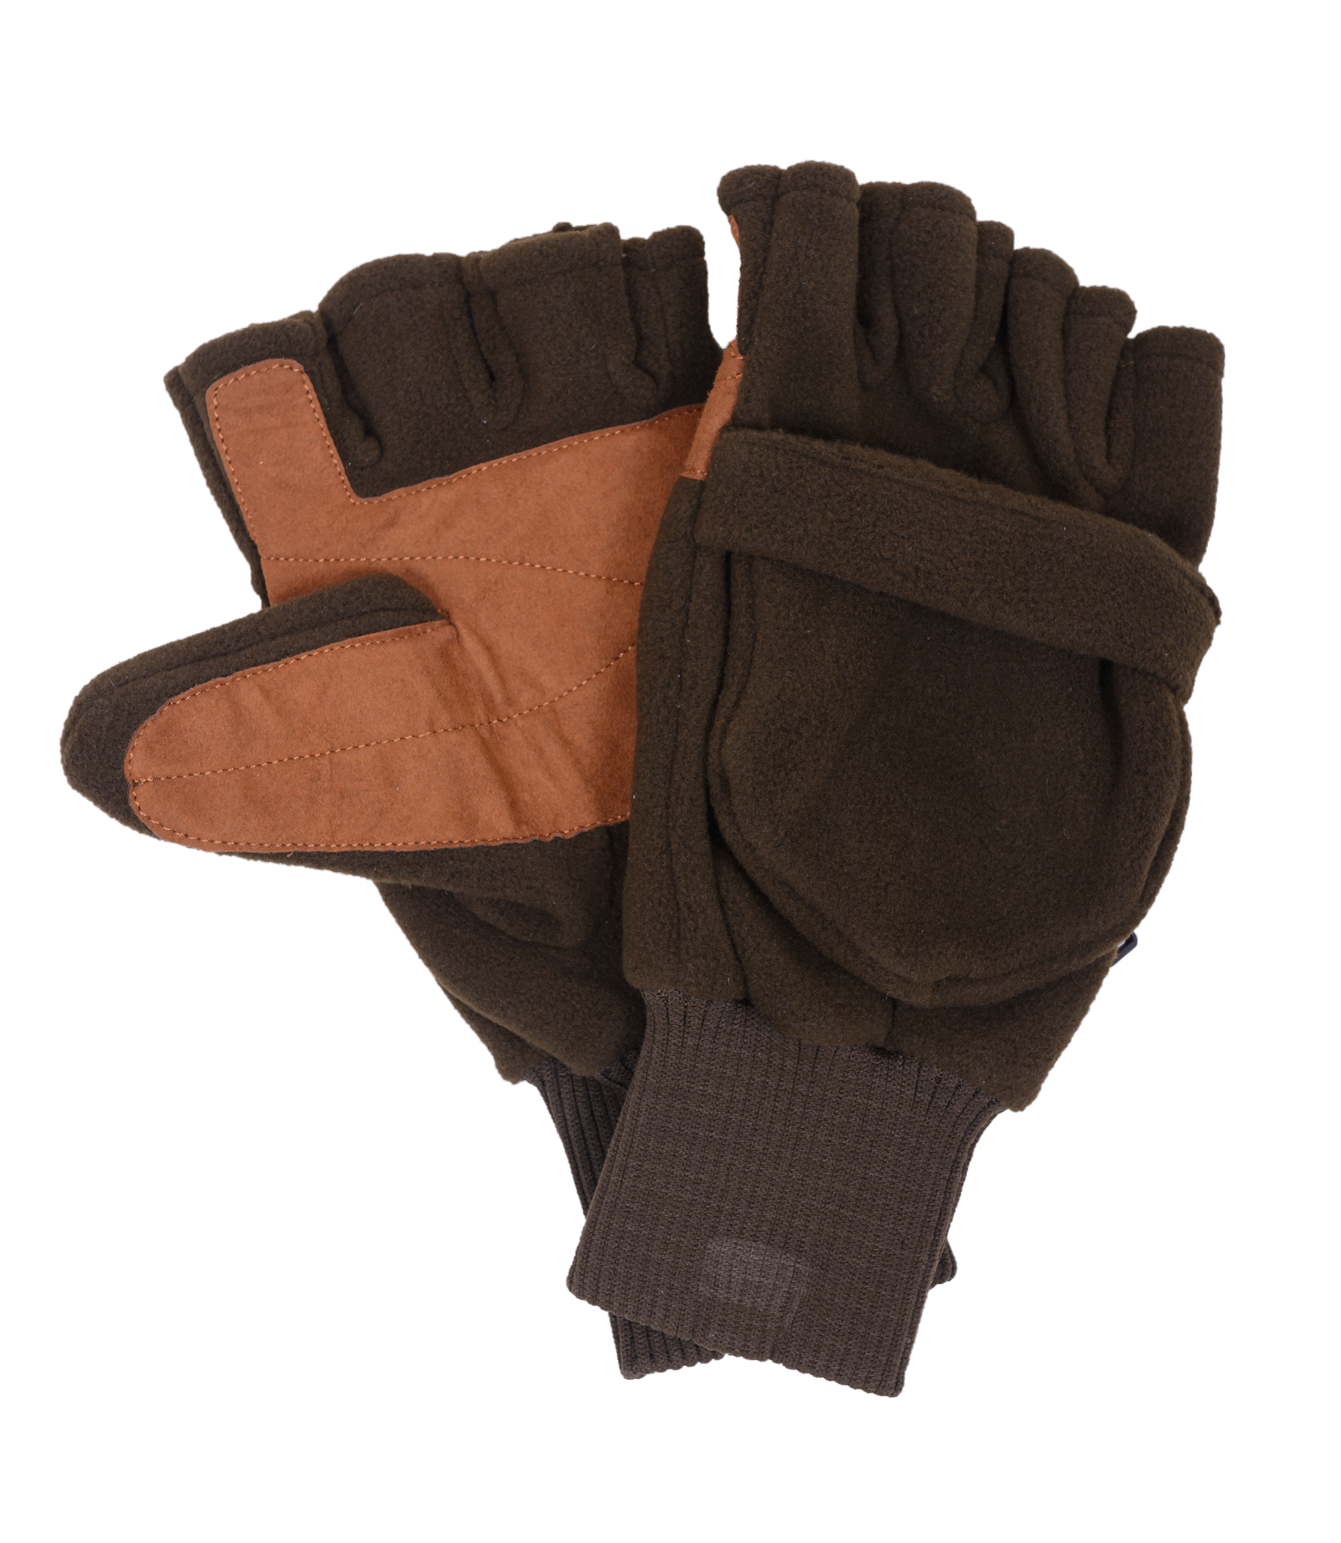 Lutterworth gloves